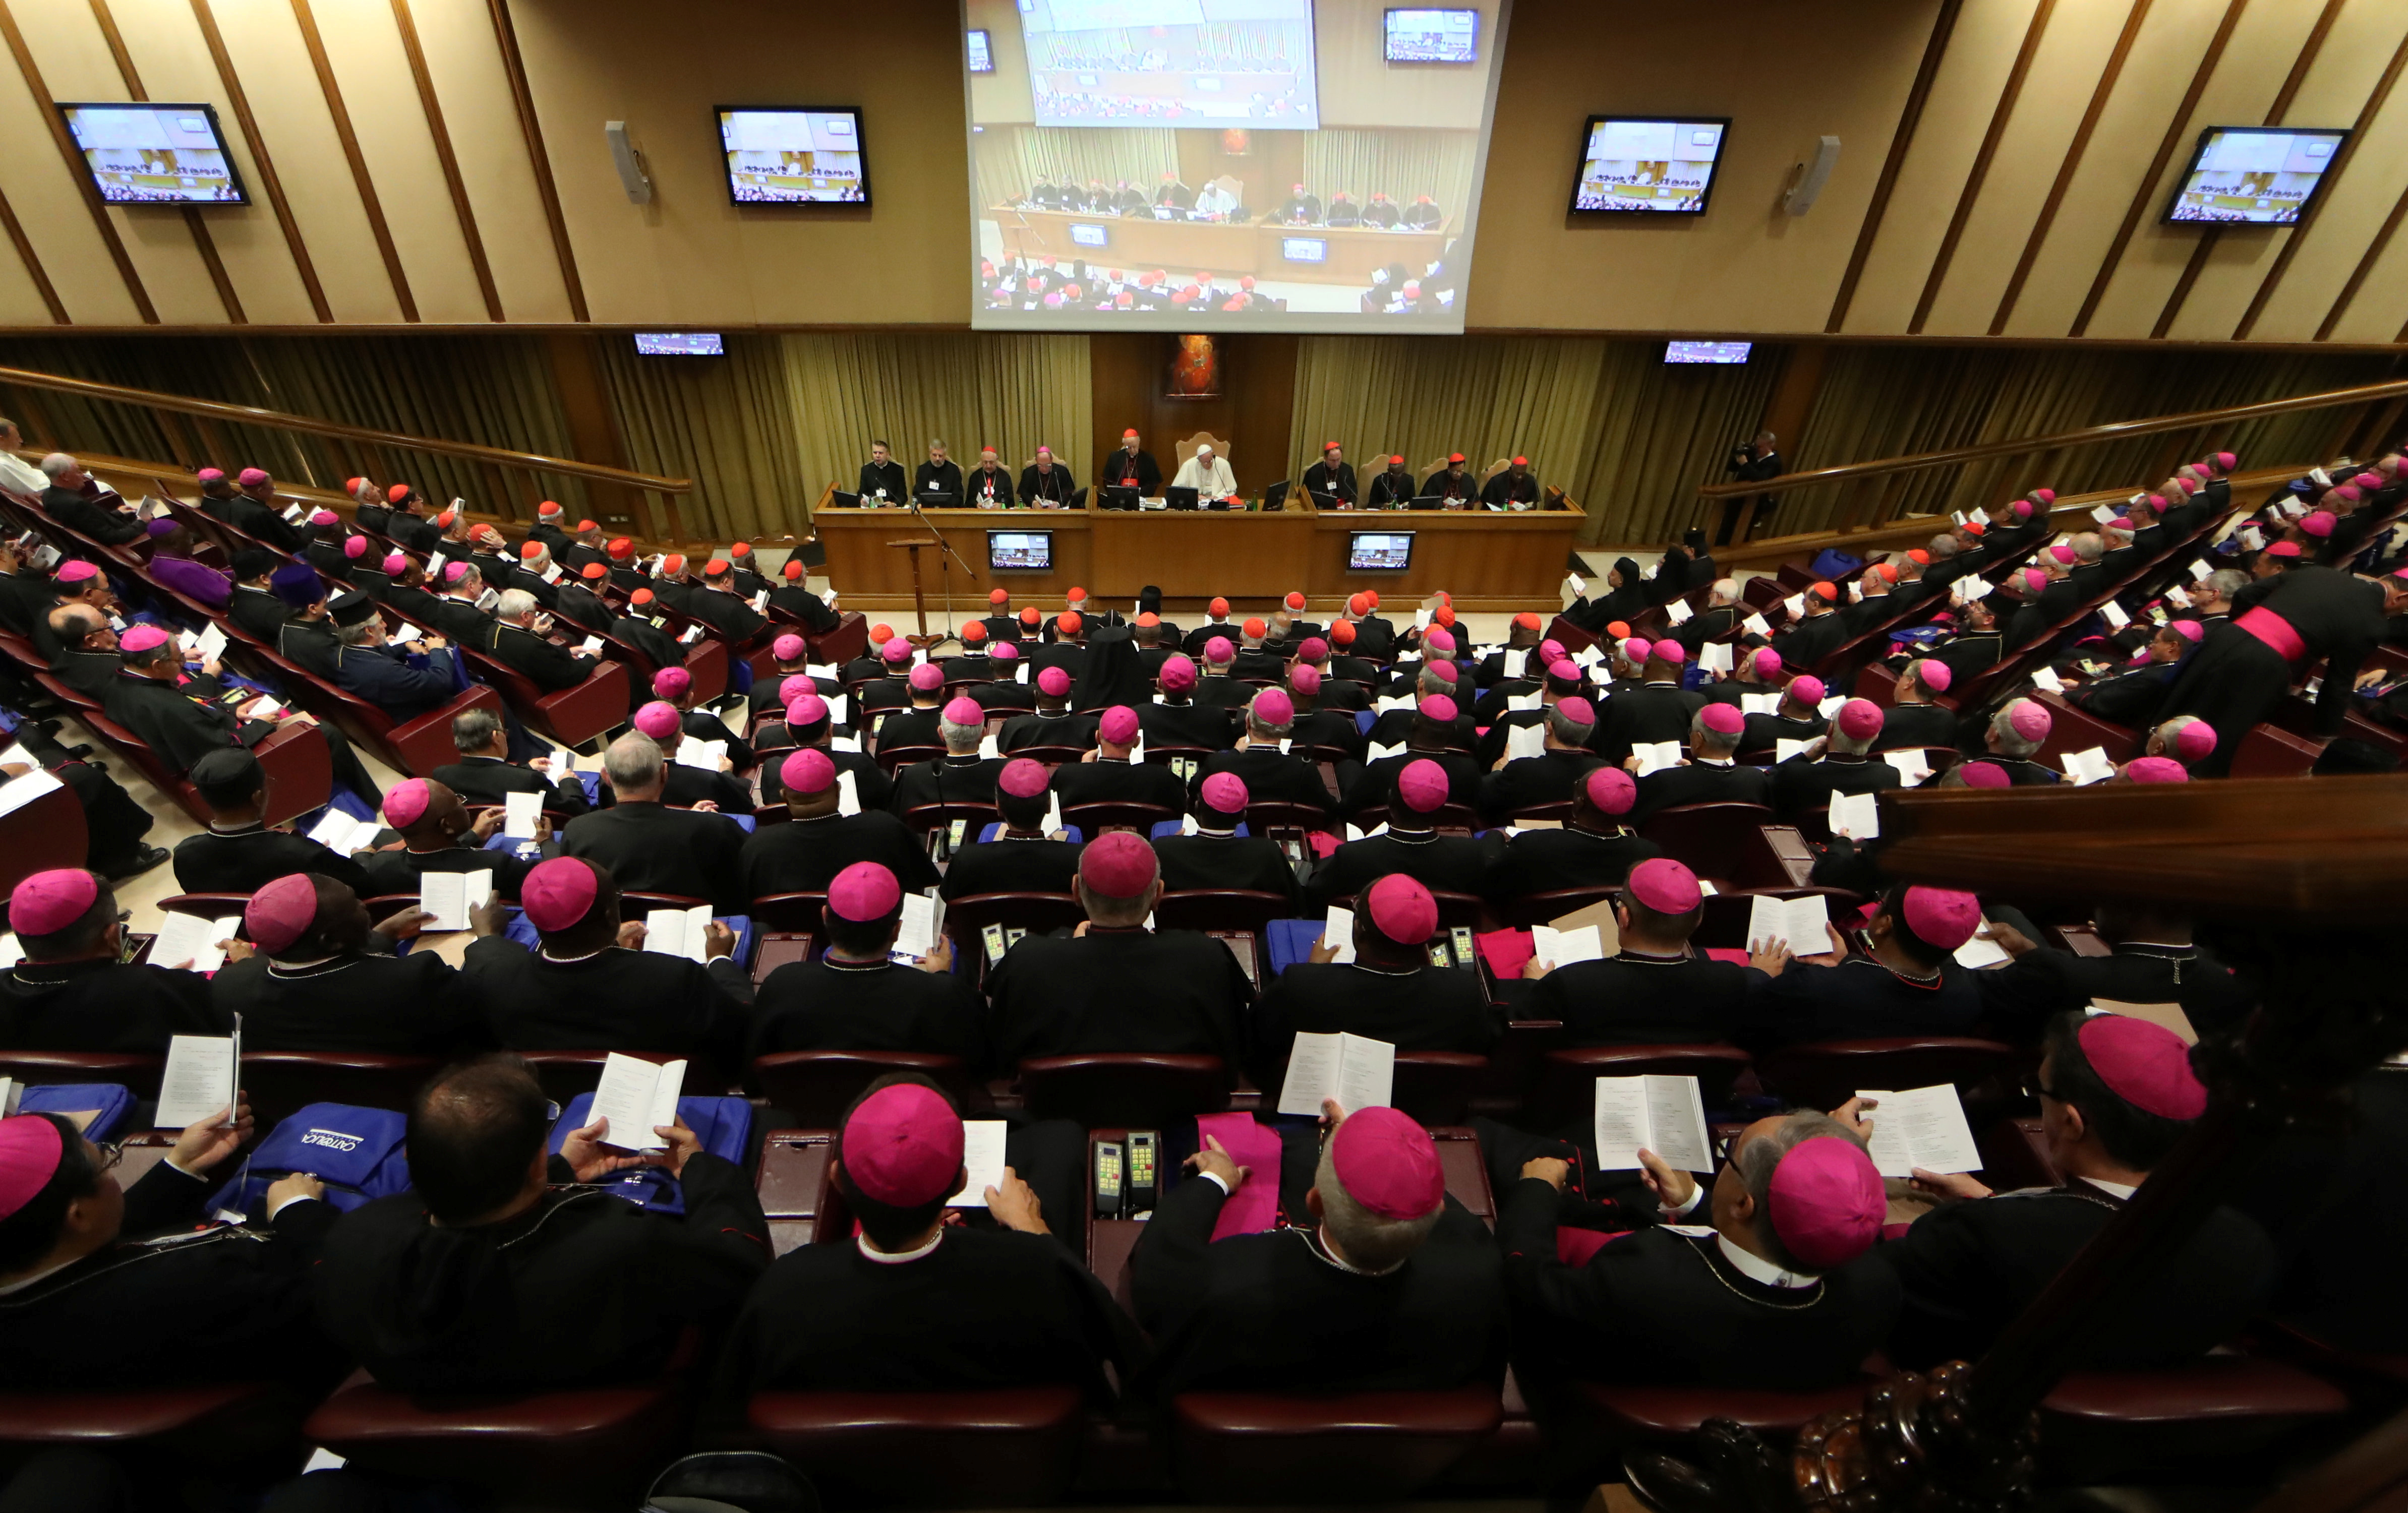 A general view shows a synodal meeting at the Vatican, October 3, 2018. REUTERS/Tony Gentile